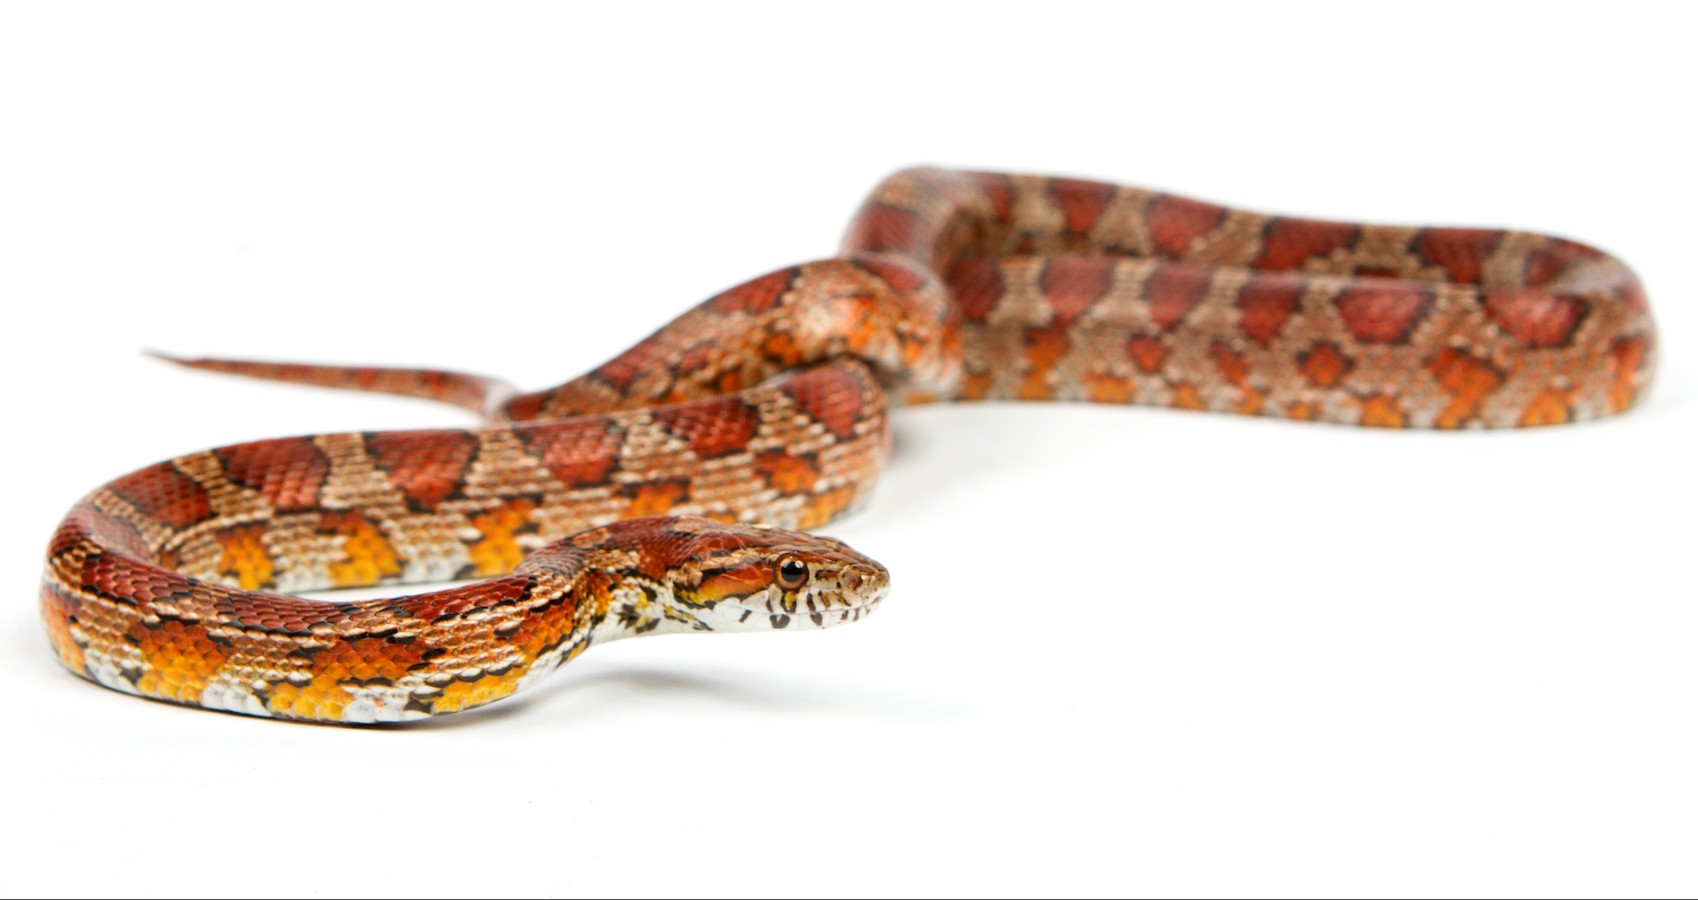 snake.elaphe guttata.young boa constrictor on a white background.